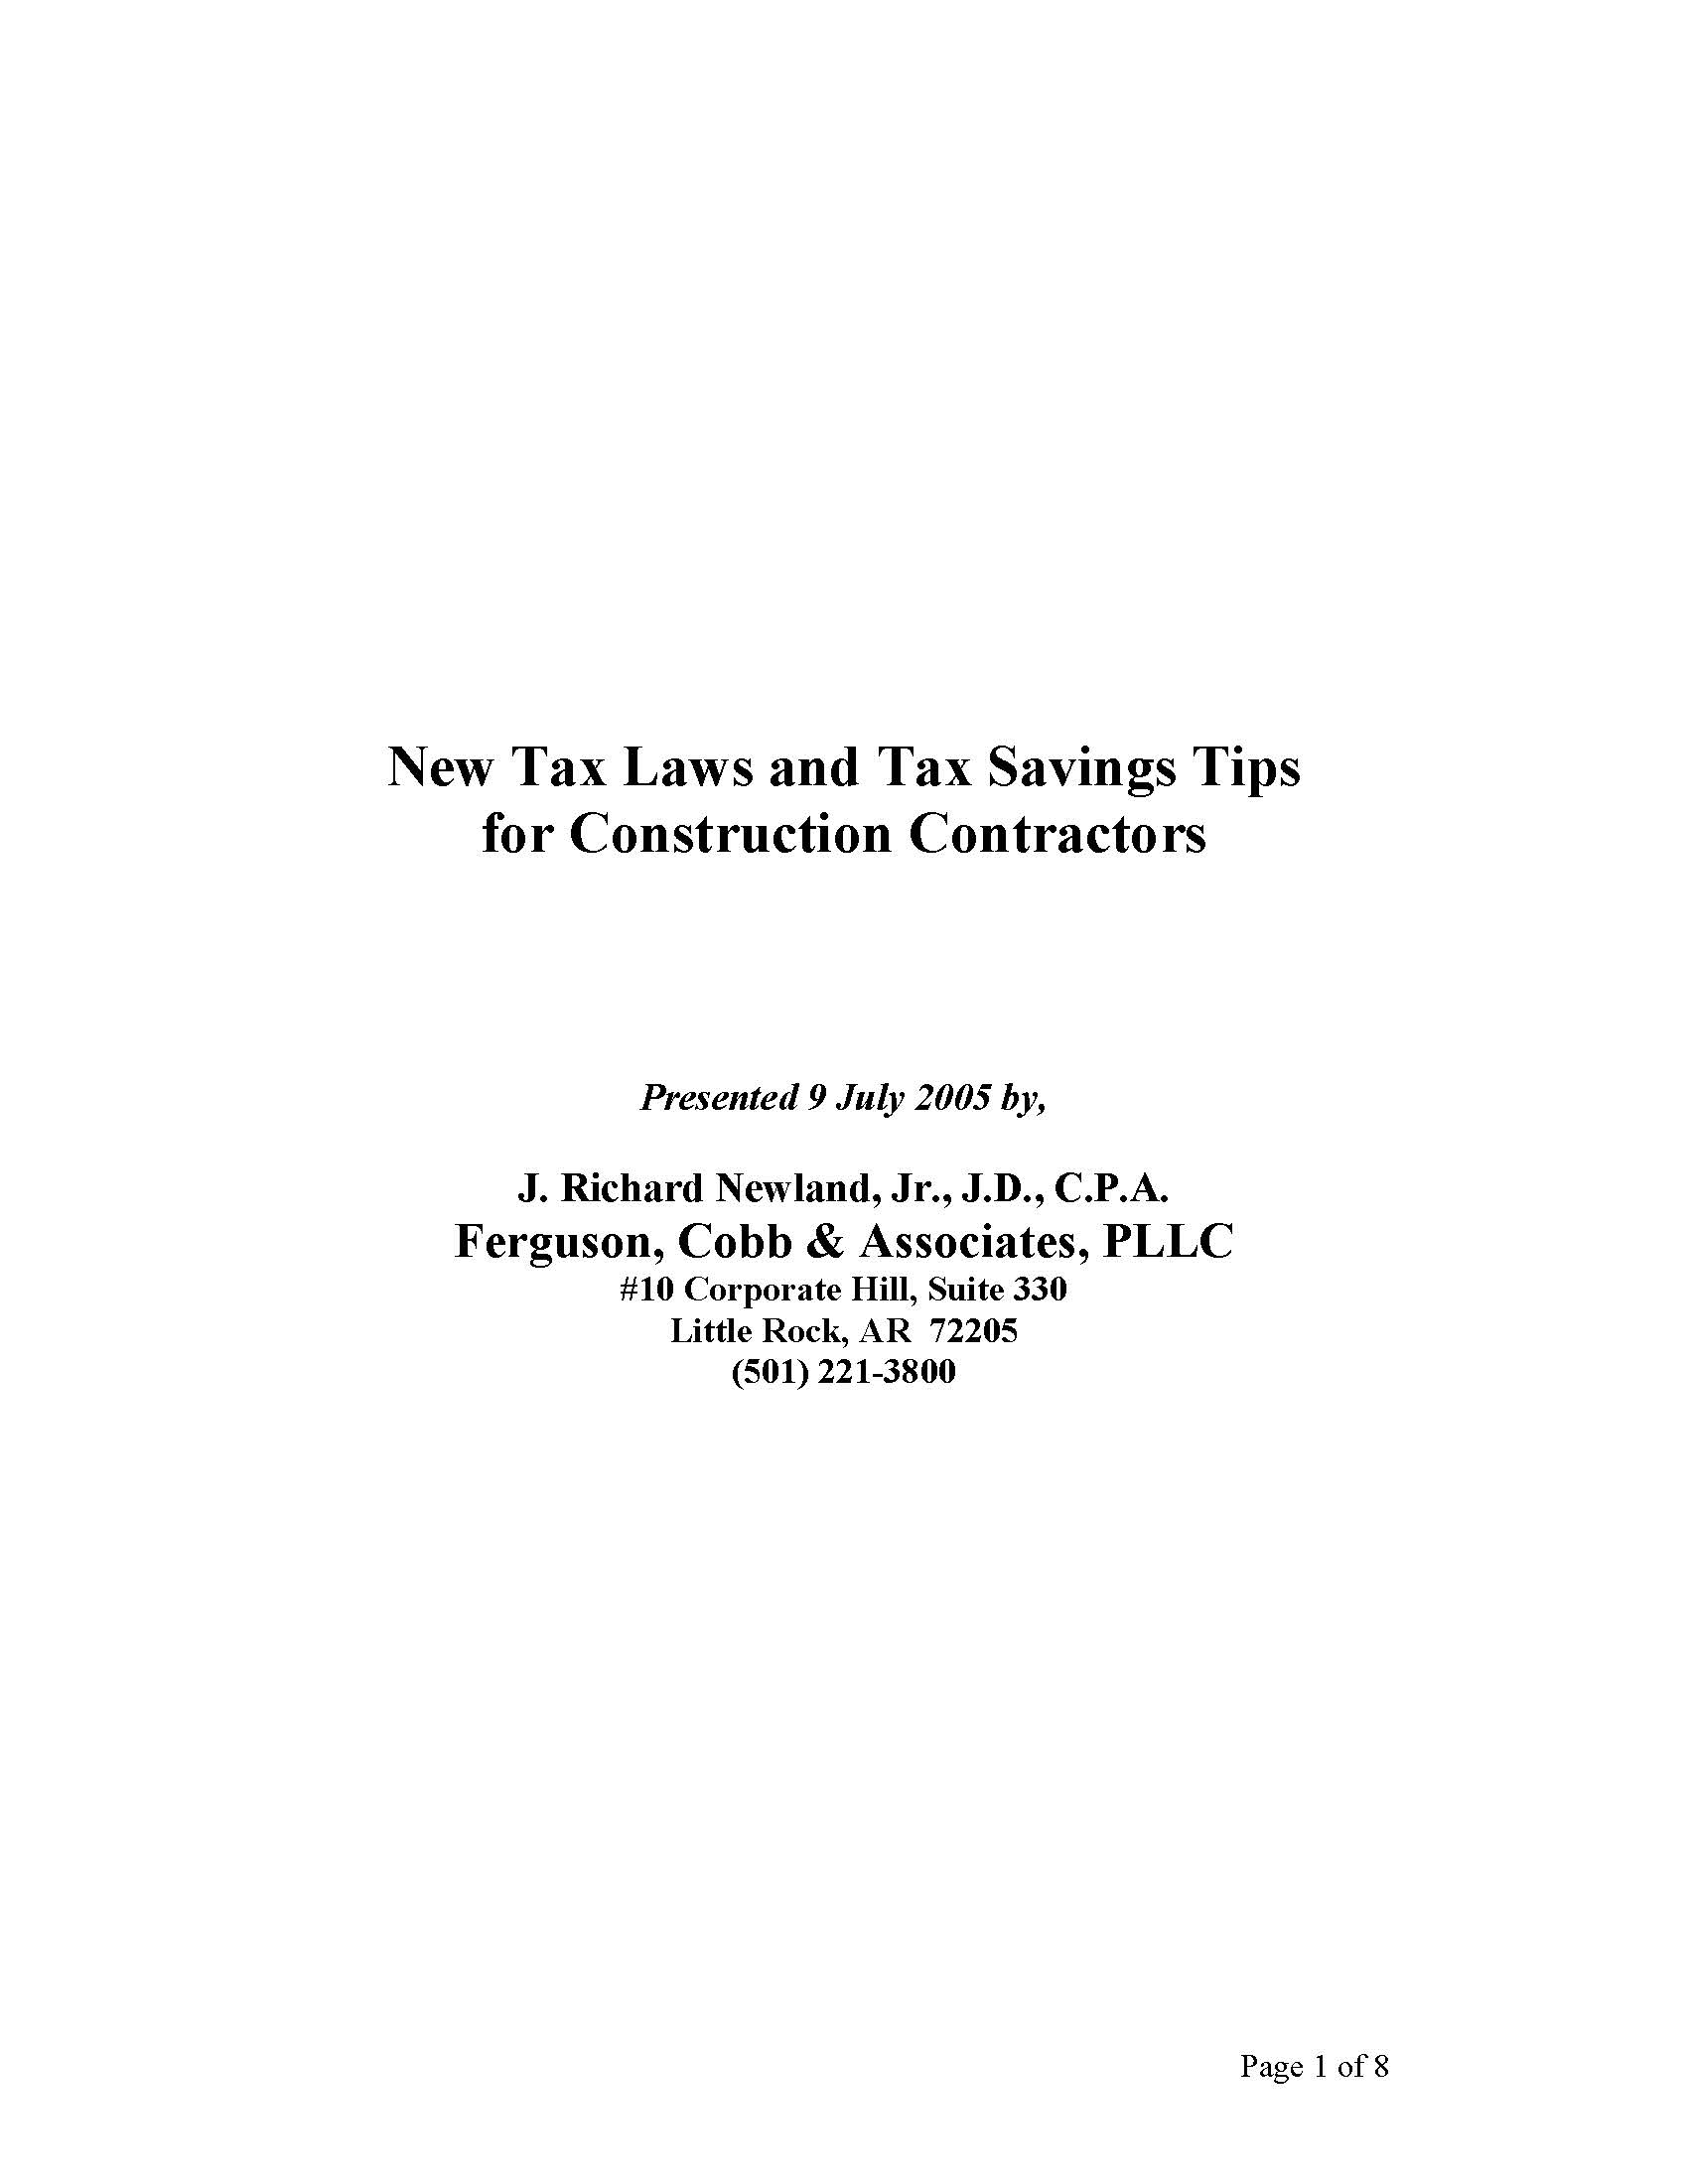 new-tax-laws-and-tax-savings-tips-fca_Page_1.jpg